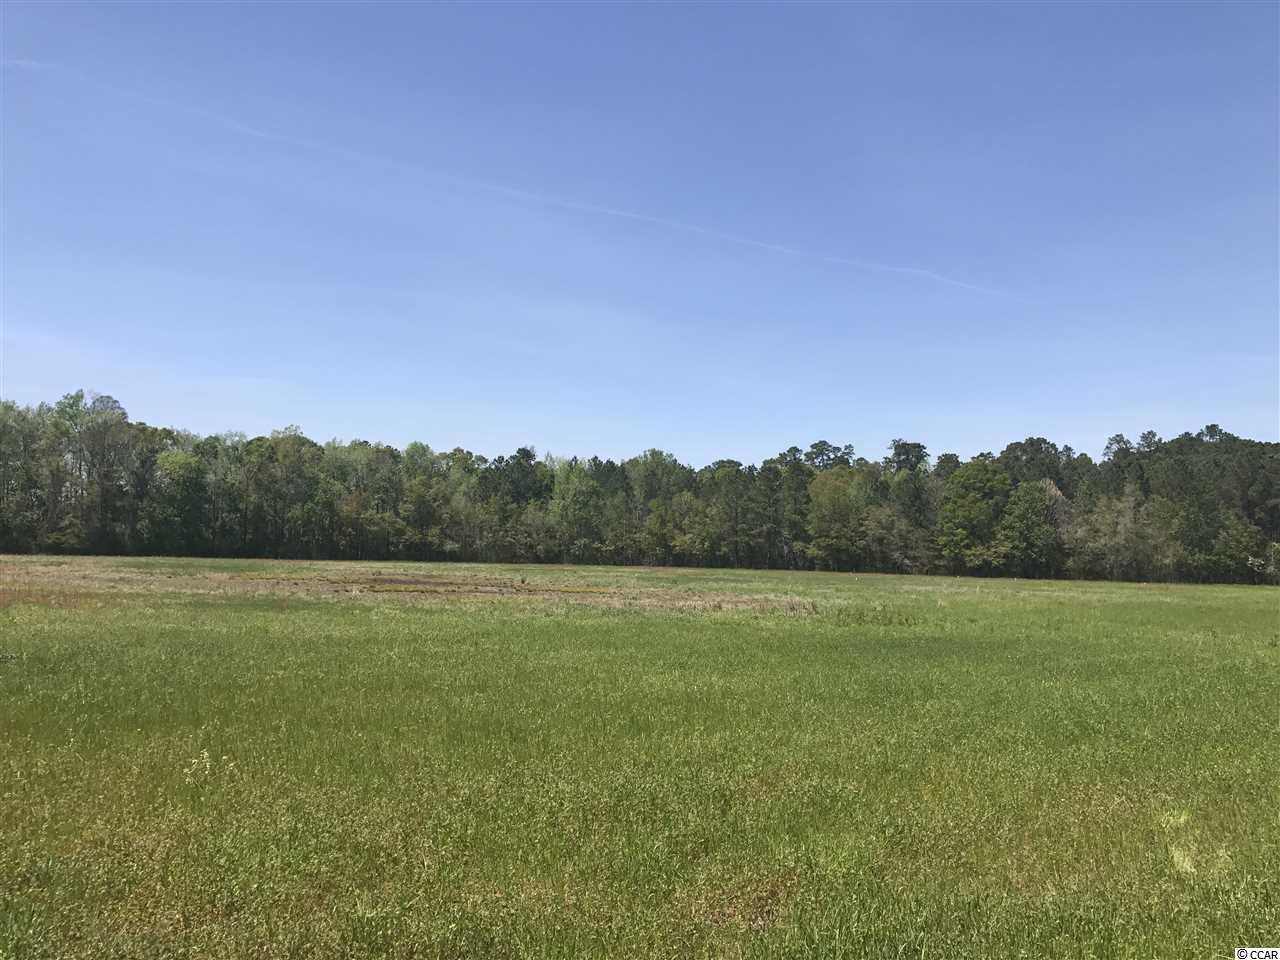 Looking to build you dream home out in the country? This lot will fit your needs perfectly! With 2.26 acres, this property has public water available for access.